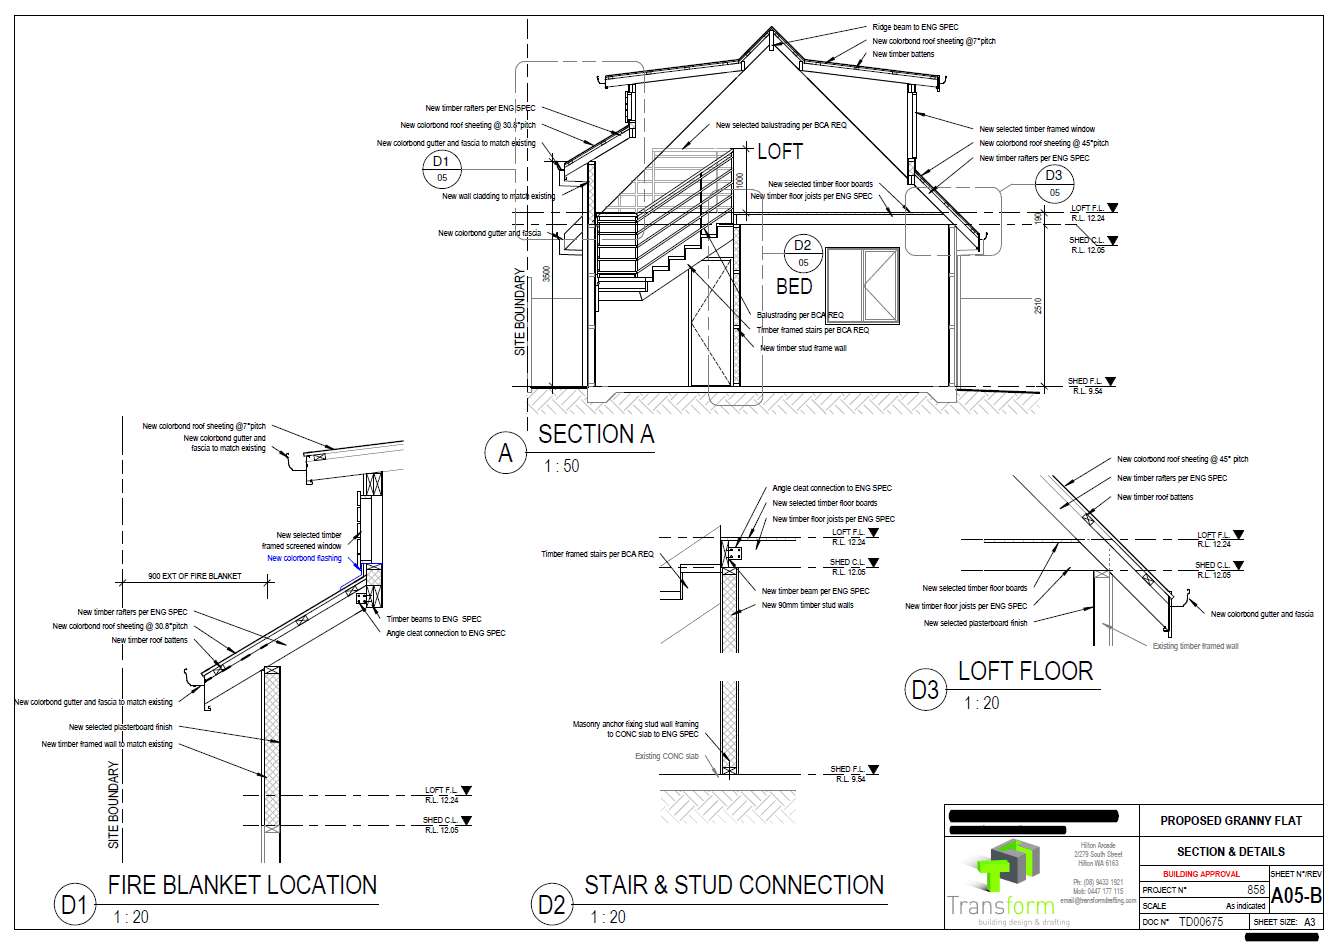 6. Section Details